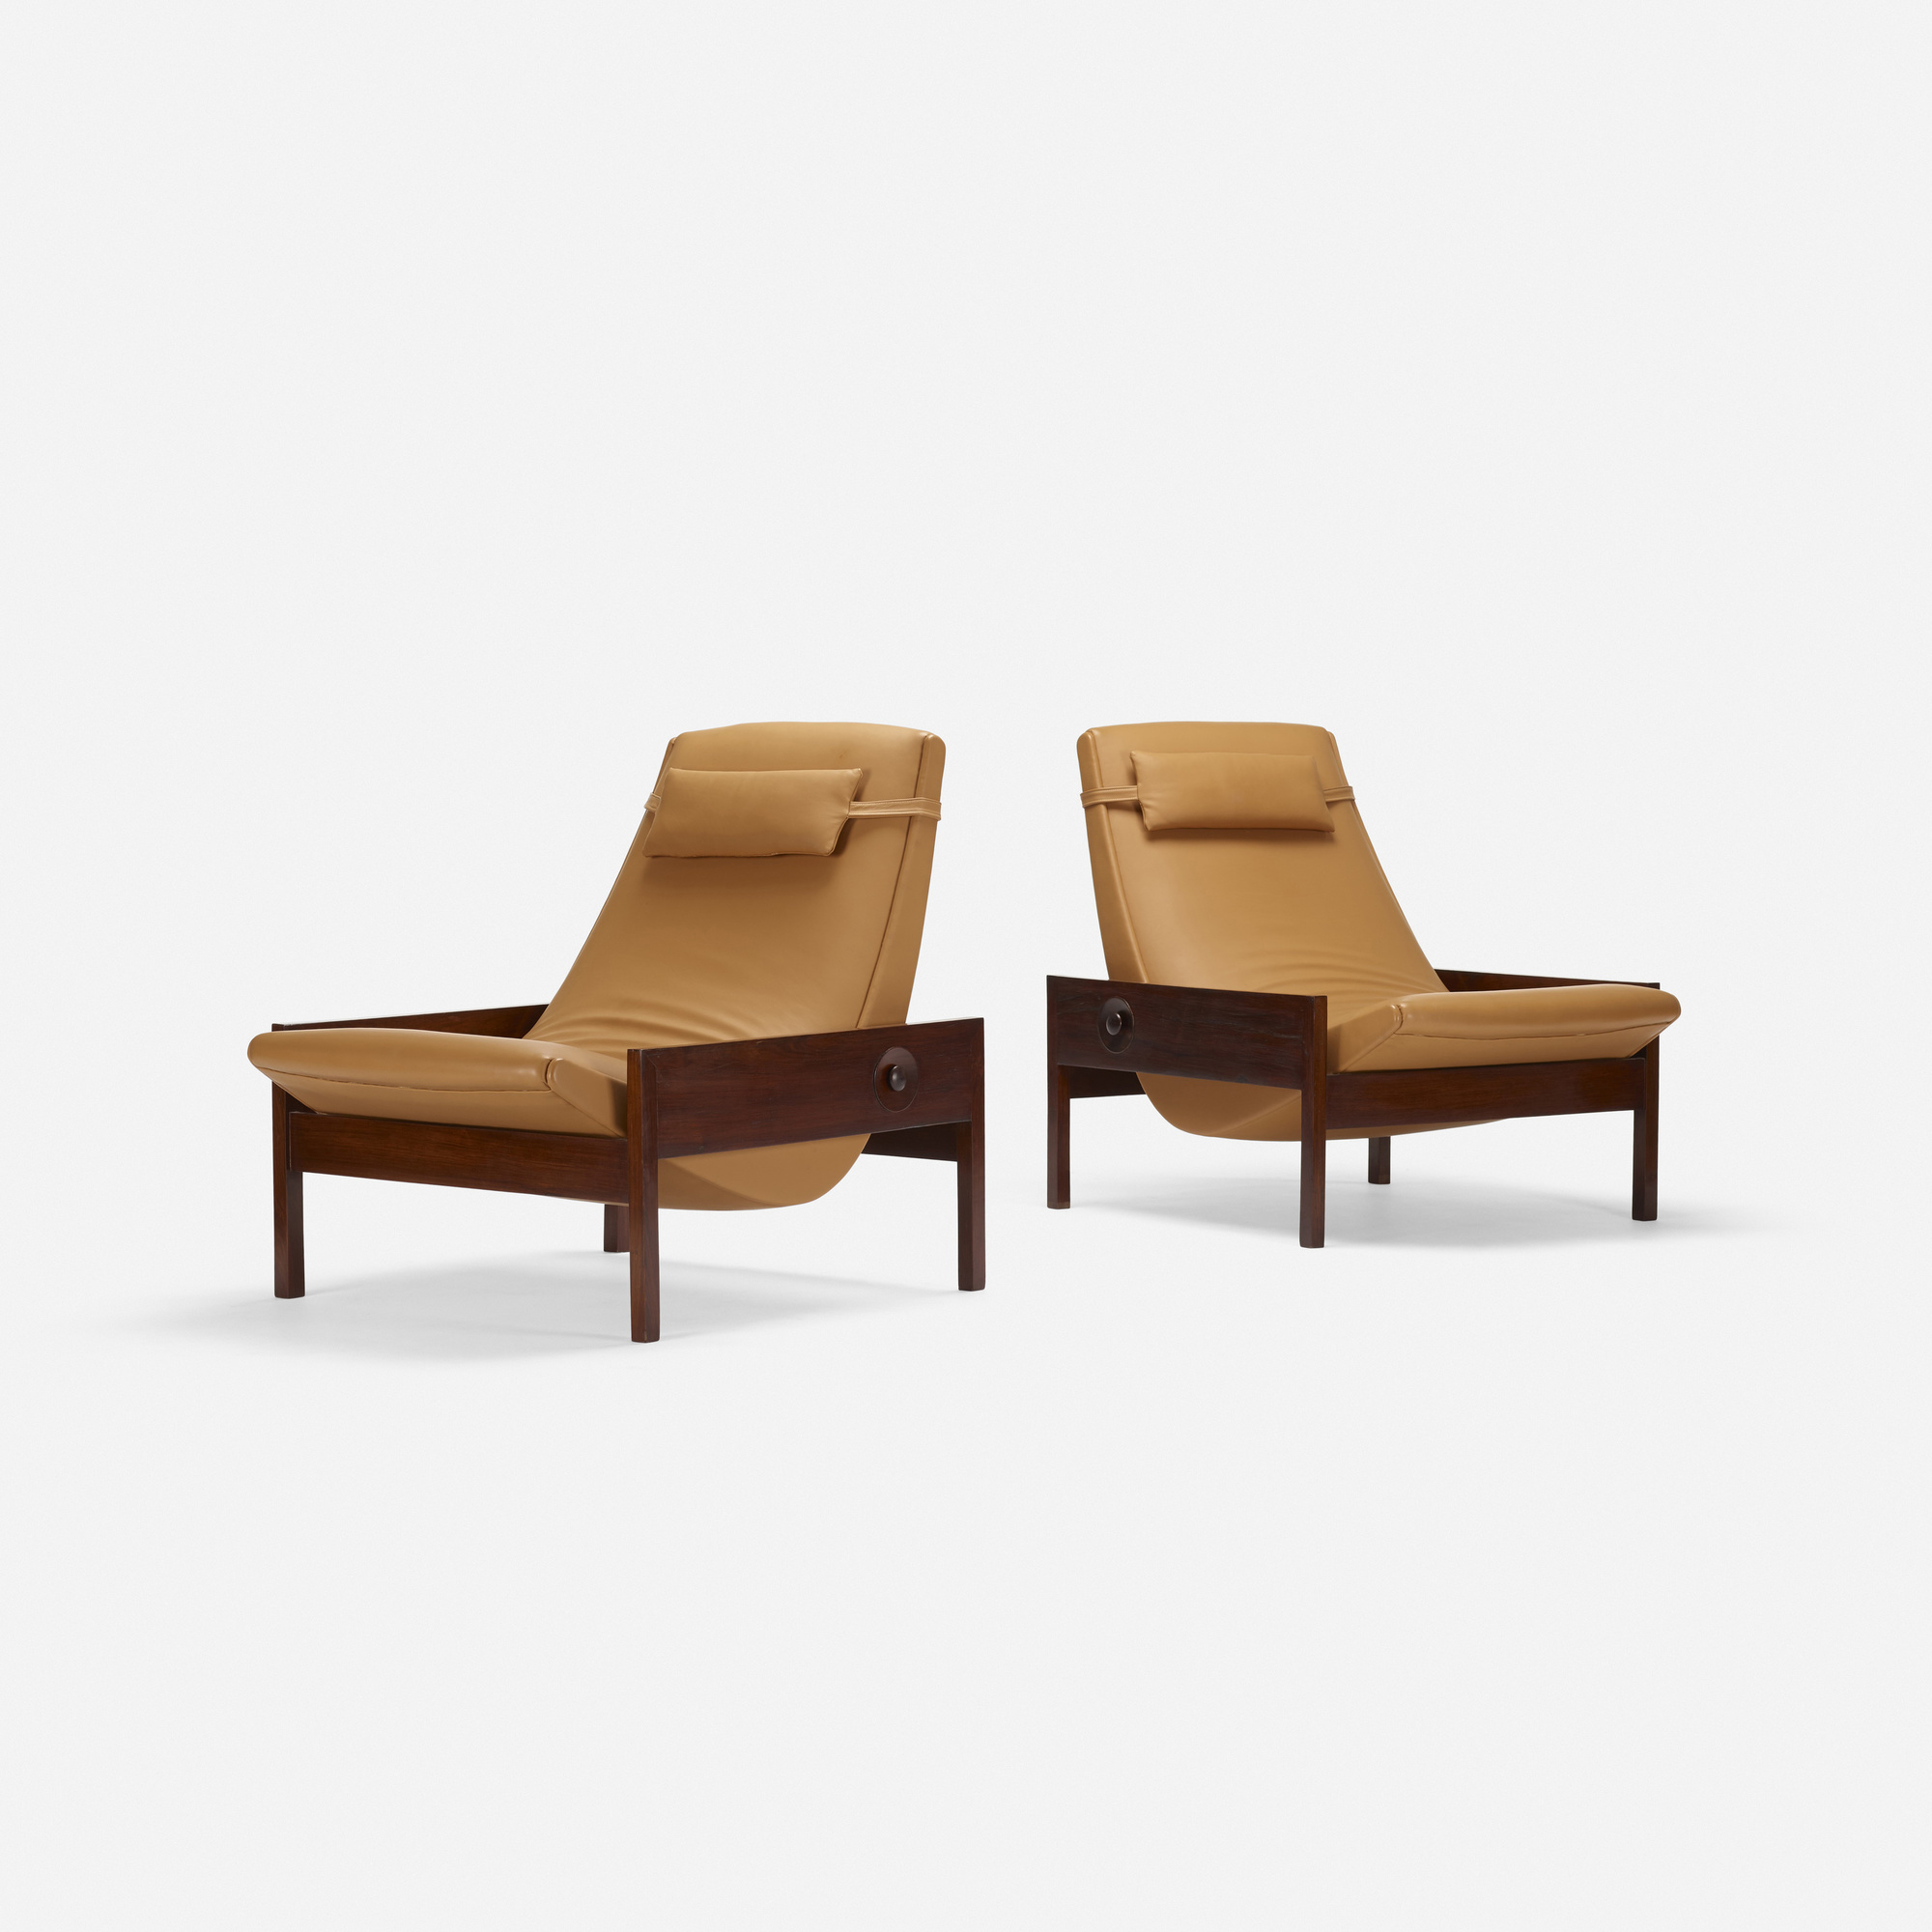 215: Brazilian / lounge chairs, pair (2 of 3)